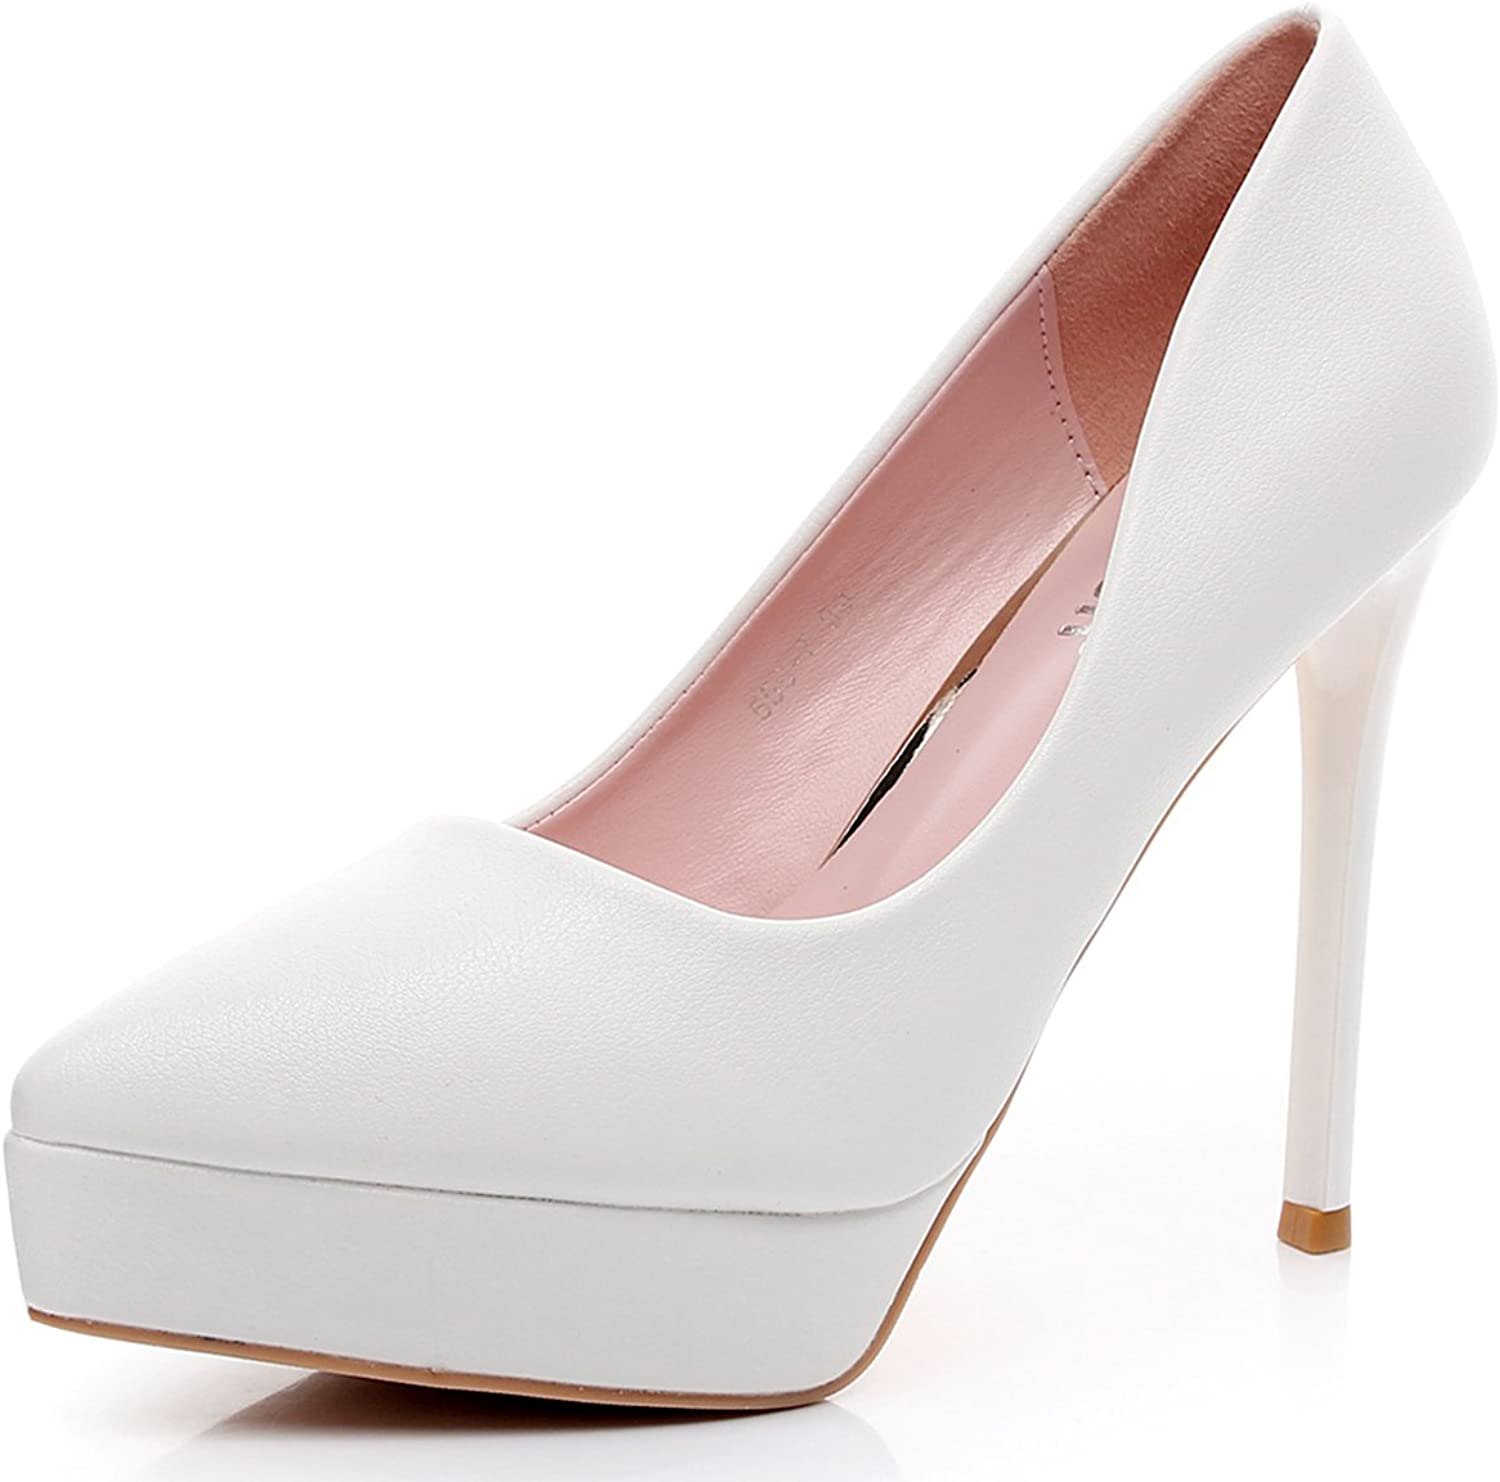 Melesh Women Wedding Dress Pumps Platform Pointed Toes High Heeled shoes